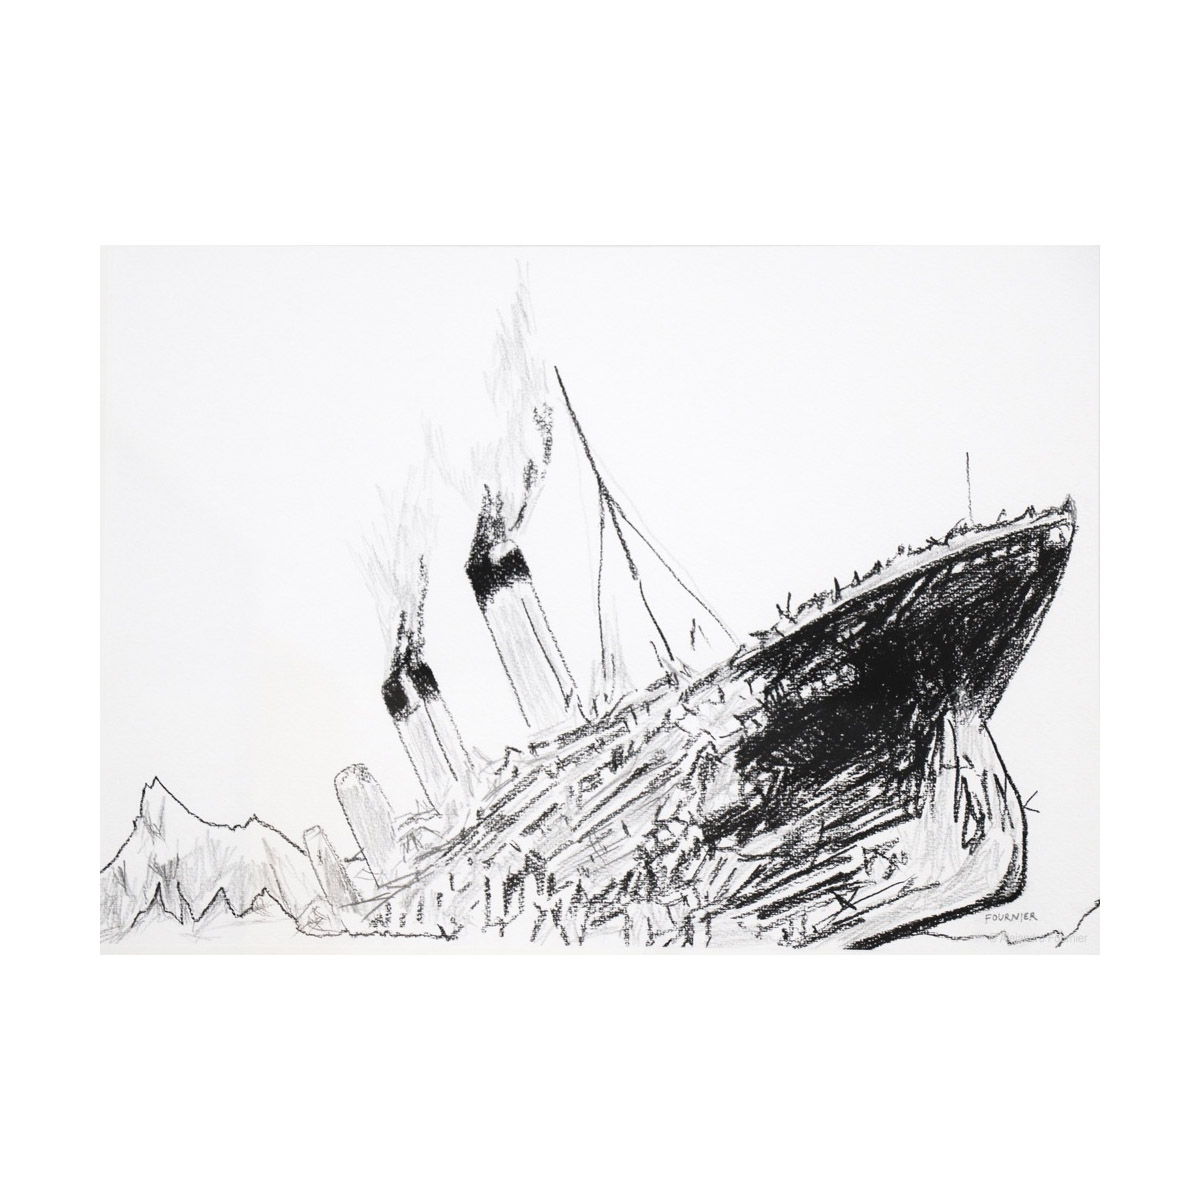 Ship Sinking Drawing At Paintingvalley